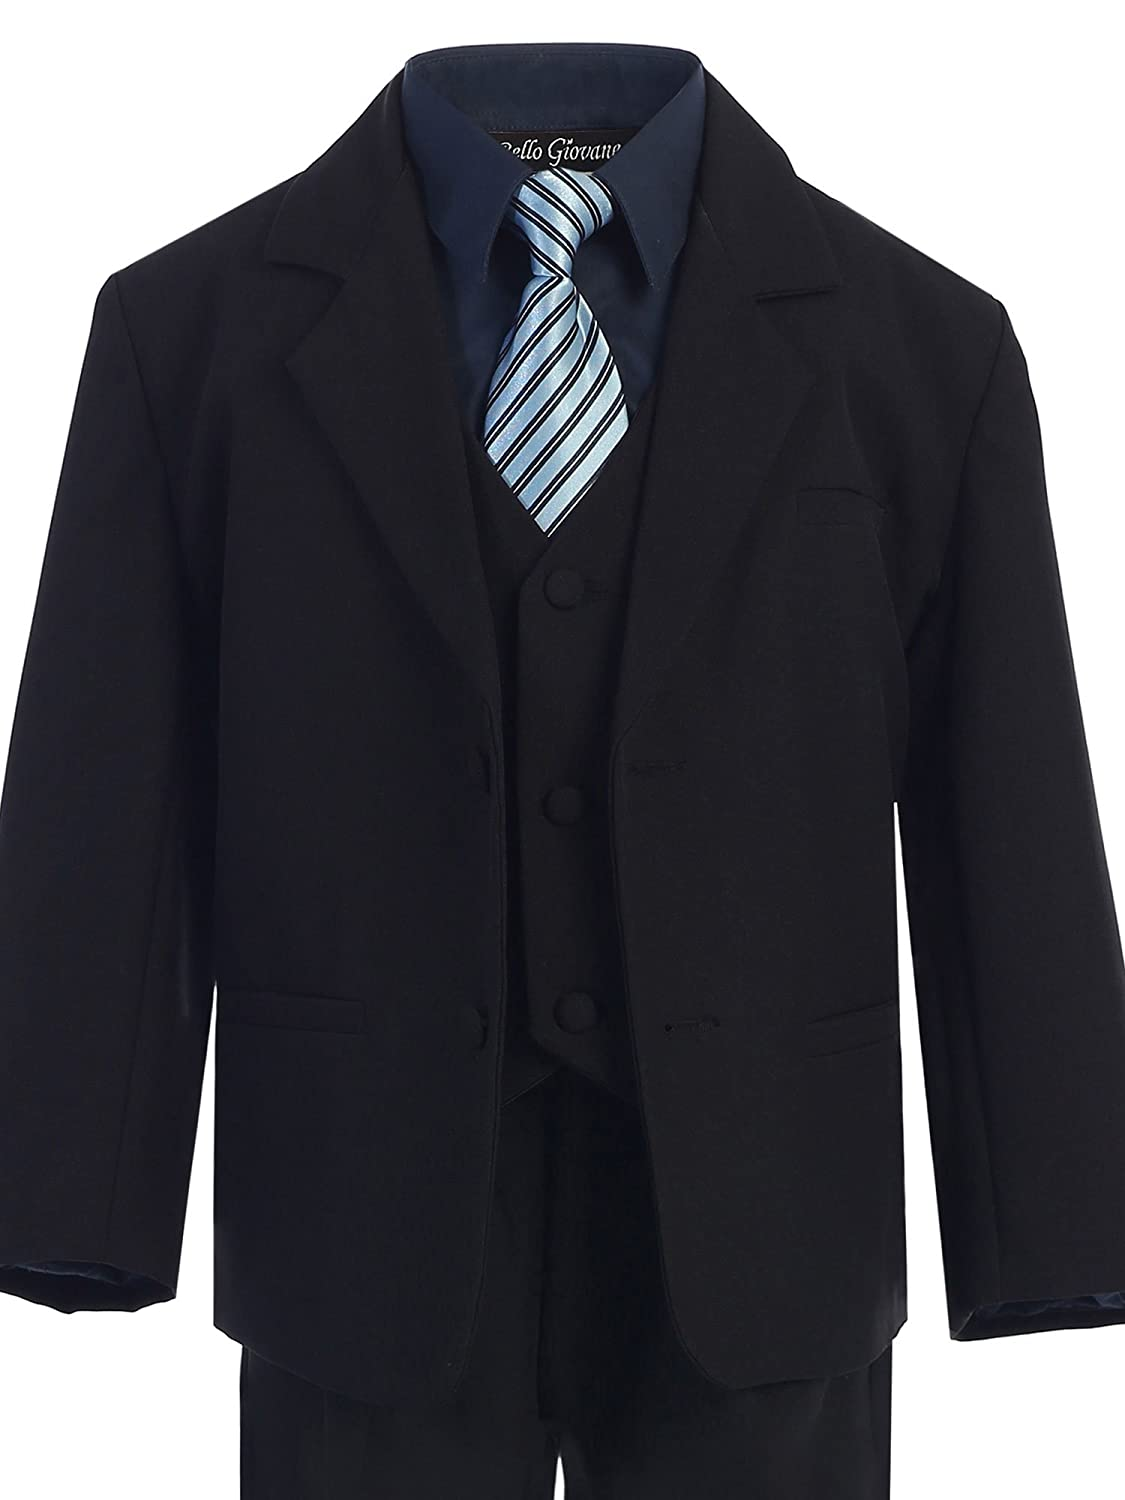 Bello Giovane Boys Black Formal Dress Suit Set with Colored Shirt